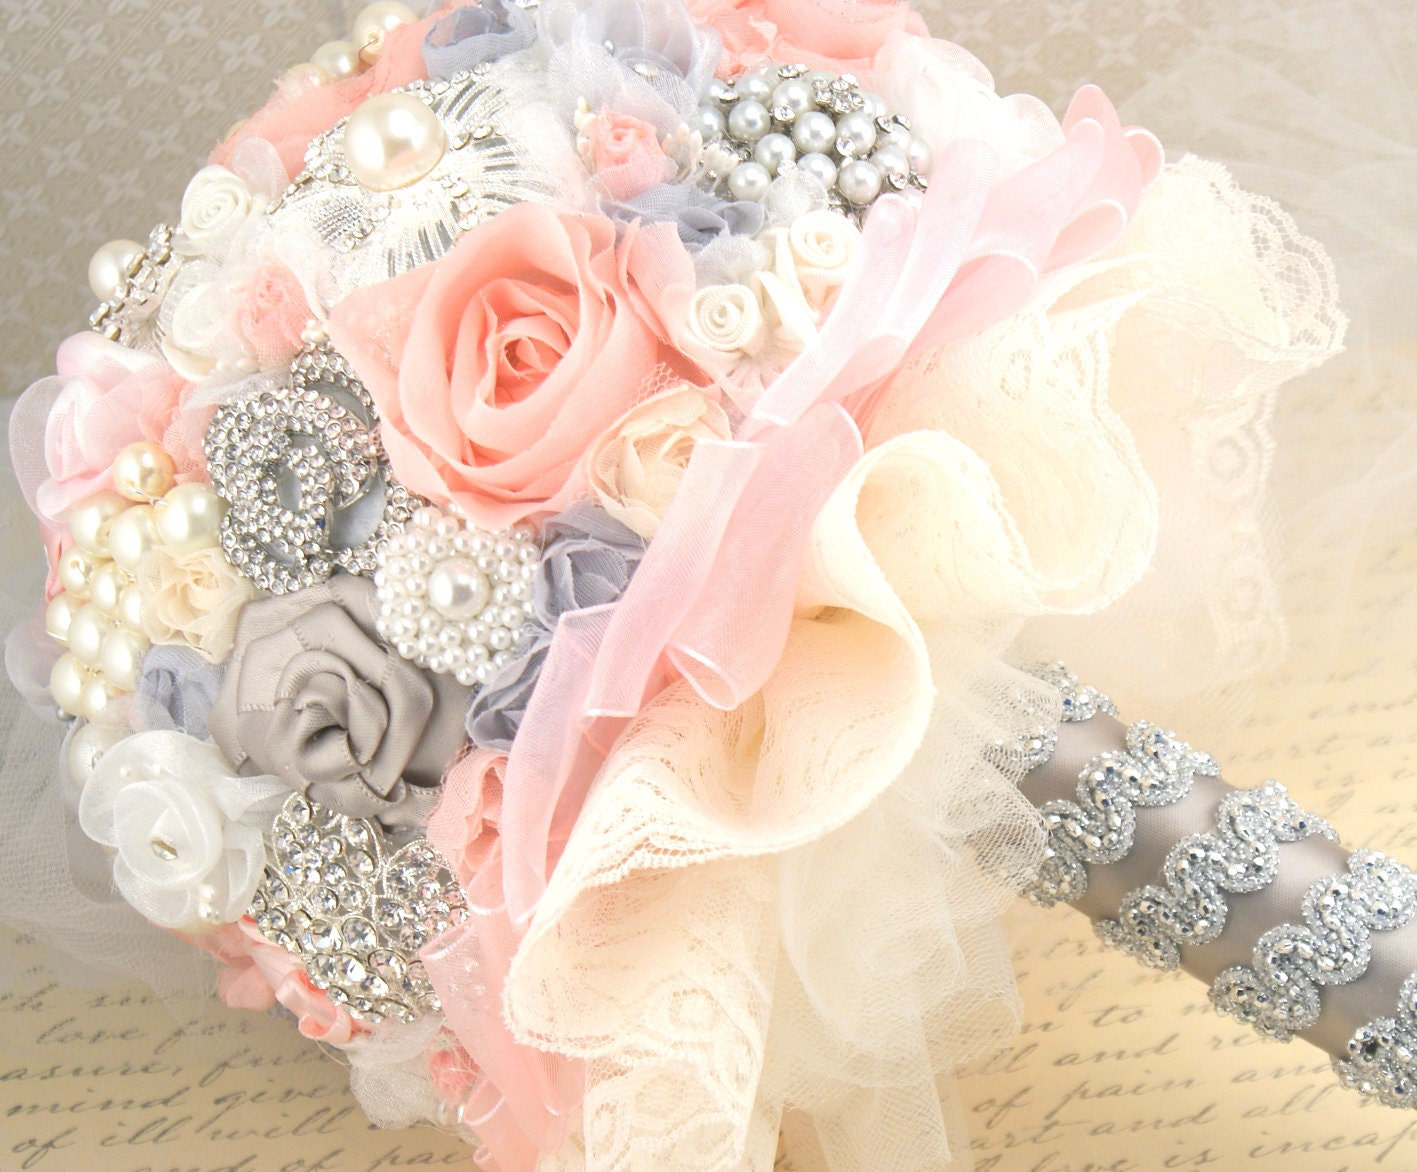 Blush Pink Hair Flower Or Brooch Bridal Wedding: Brooch Bouquet Jeweled Wedding Bouquet In Pink Gray By